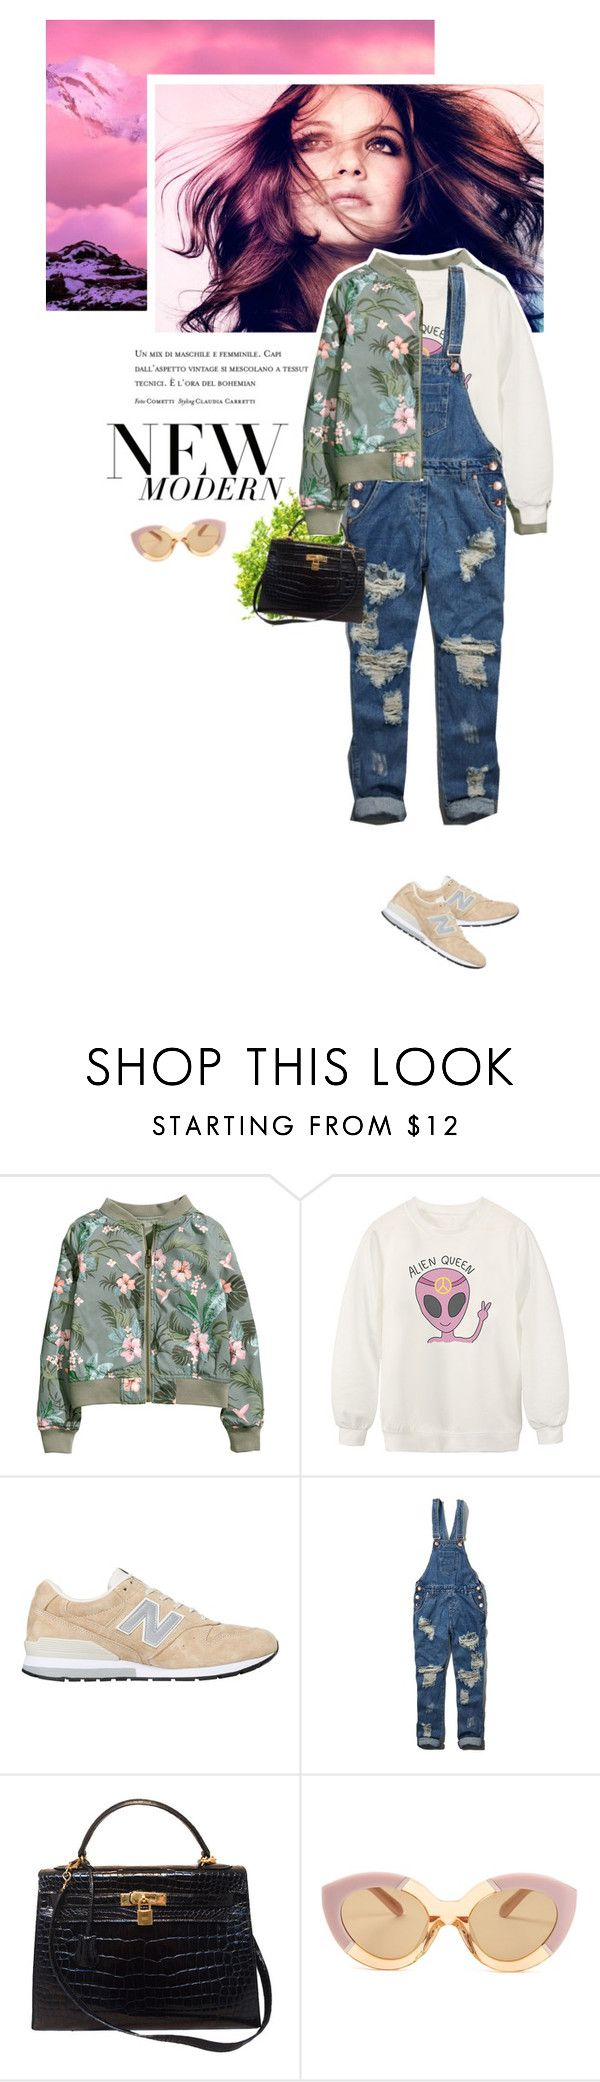 """""""[ Super Bowl ]"""" by crilovesjapan ❤ liked on Polyvore featuring H&M, Chicnova Fashion, New Balance, Abercrombie & Fitch, Hermès, Karen Walker, women's clothing, women, female and woman"""